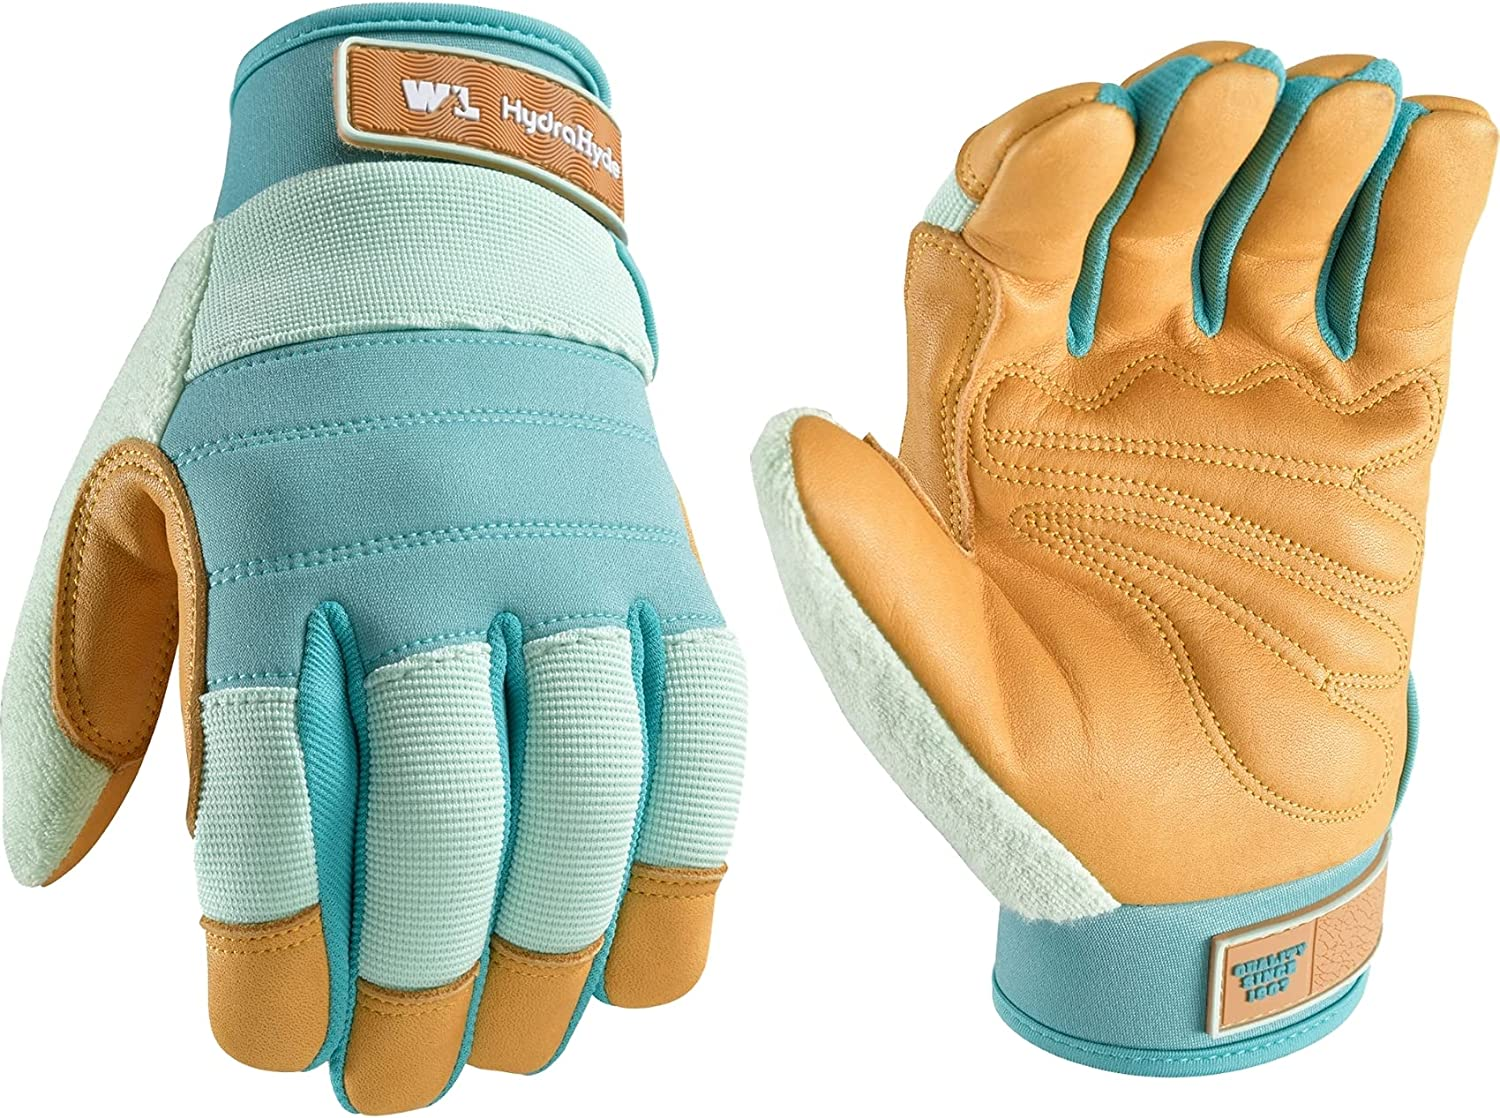 Women's HydraHyde Water-Resistant Leather Palm Hybrid Garde Work New item Max 46% OFF